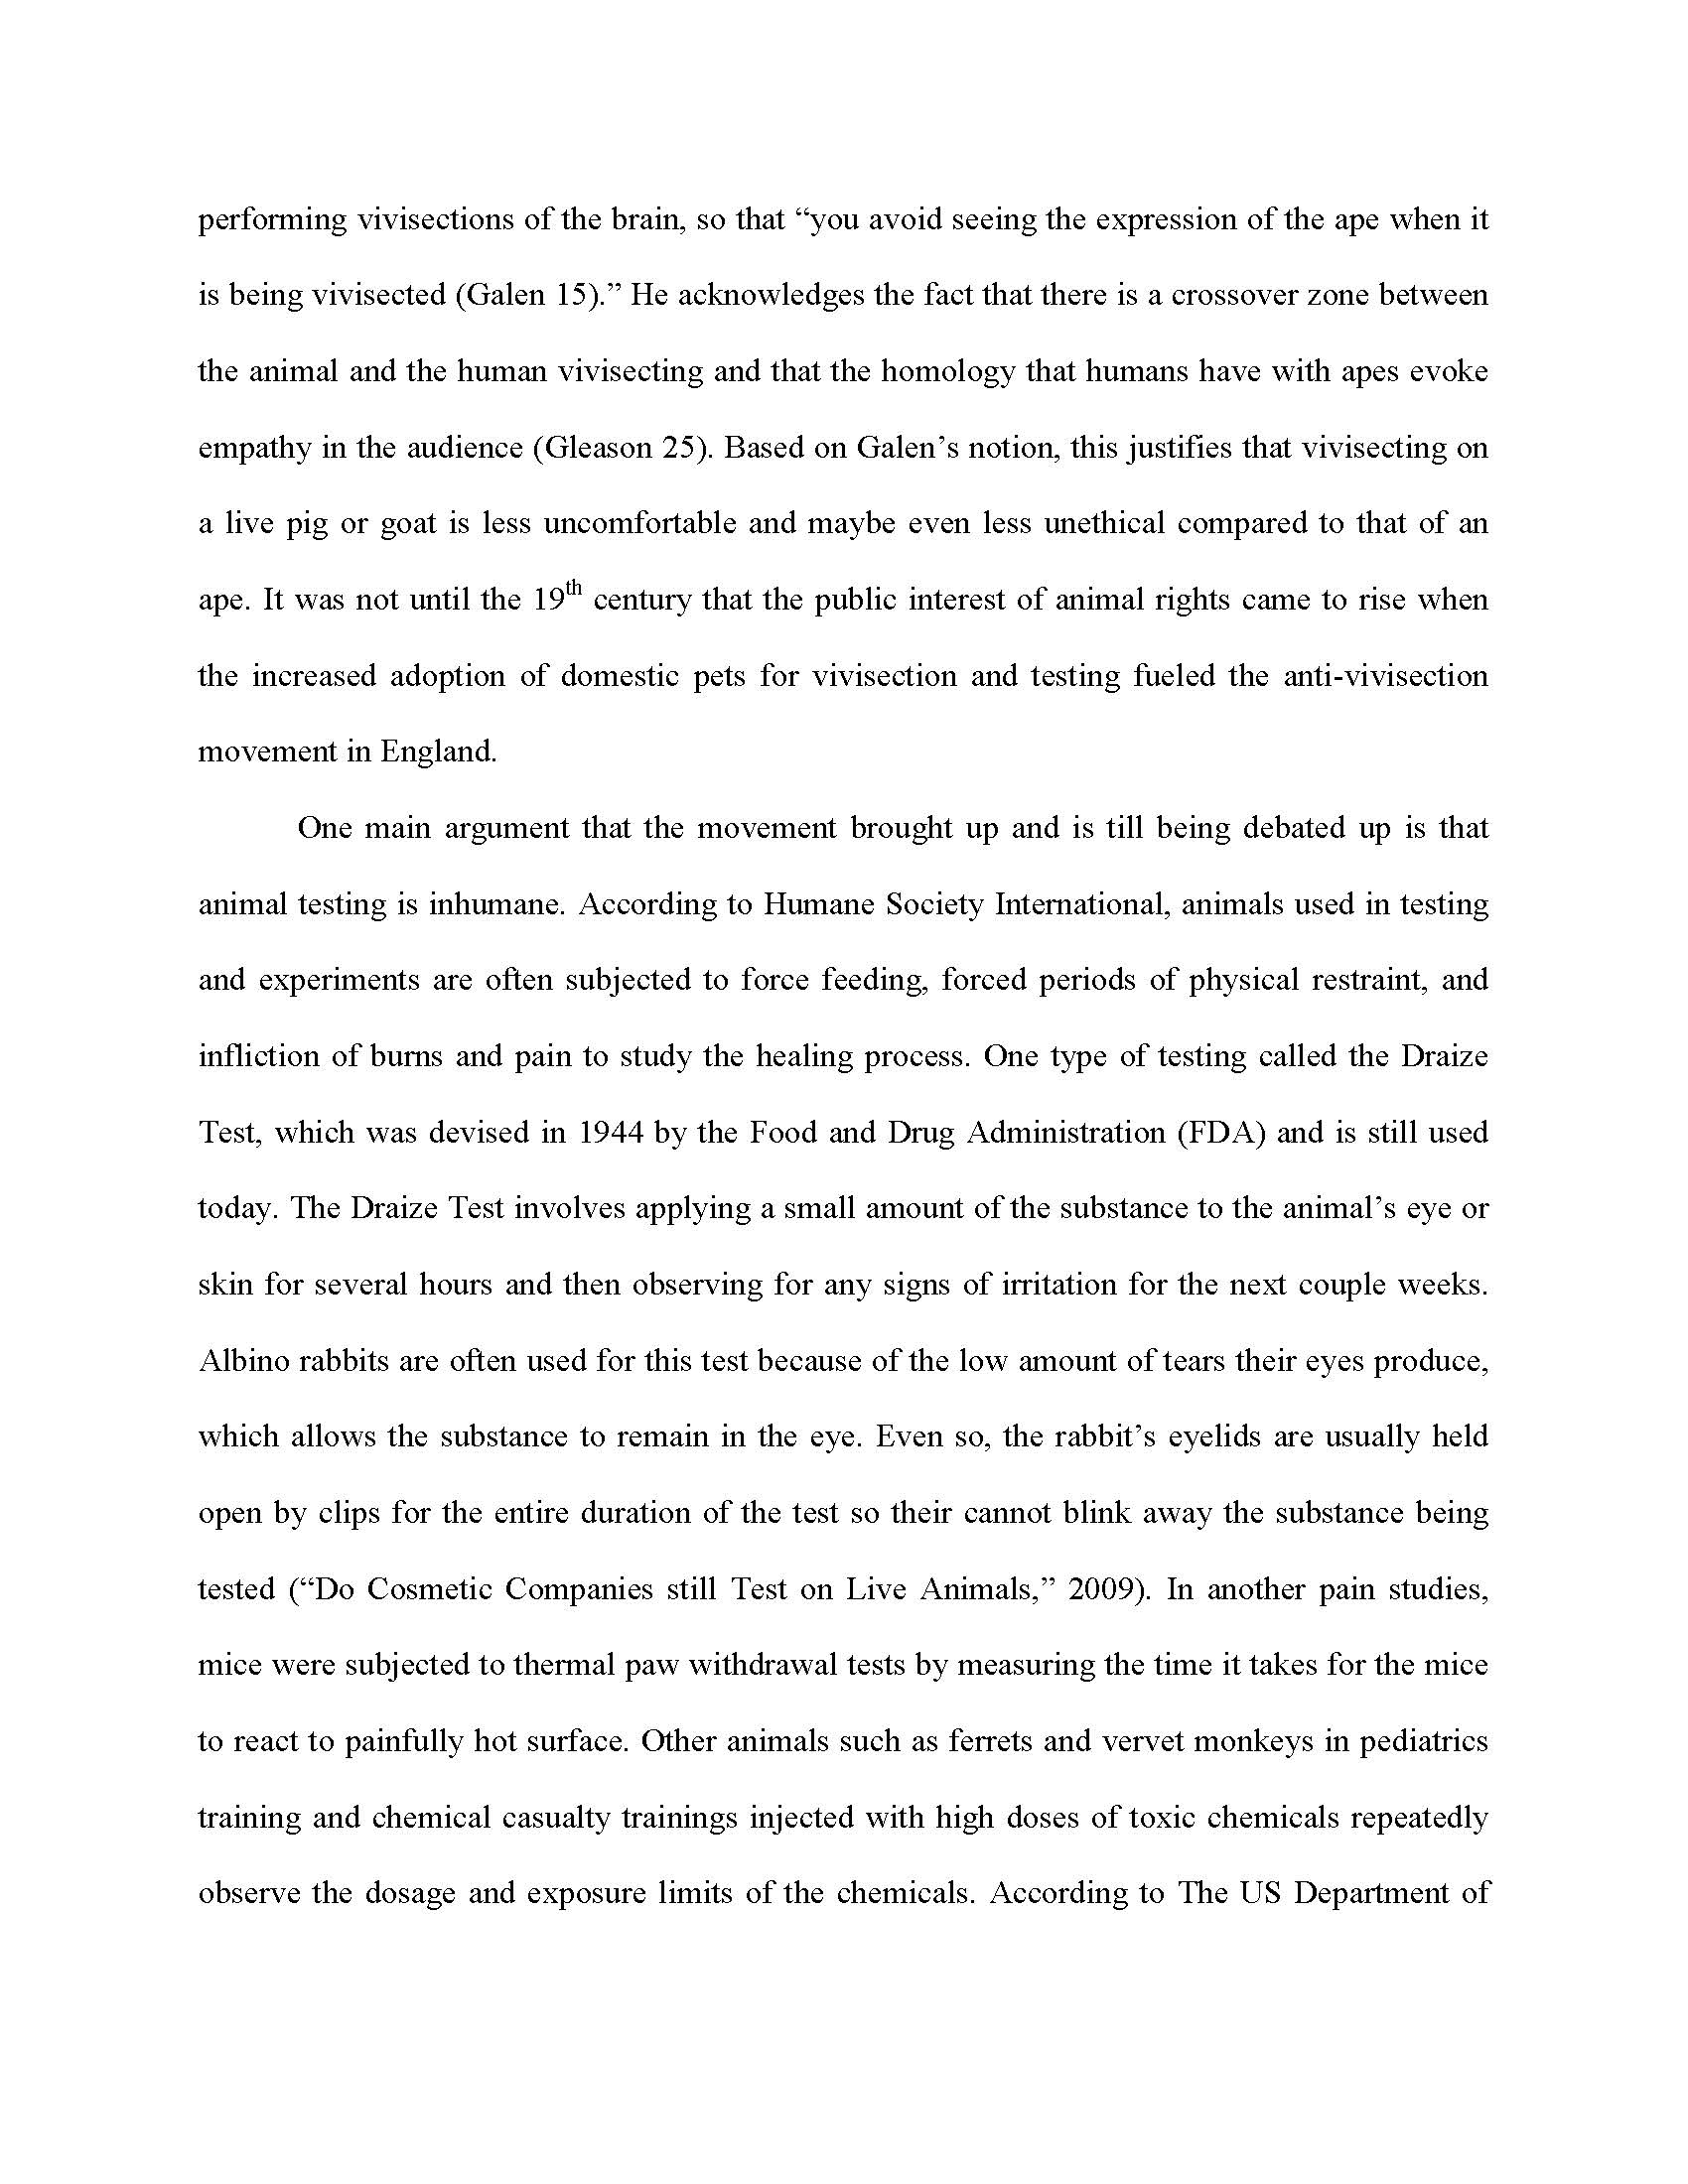 007 Essay Example Against Animal Testing Final Page 2 Imposing Introduction Persuasive Titles Full